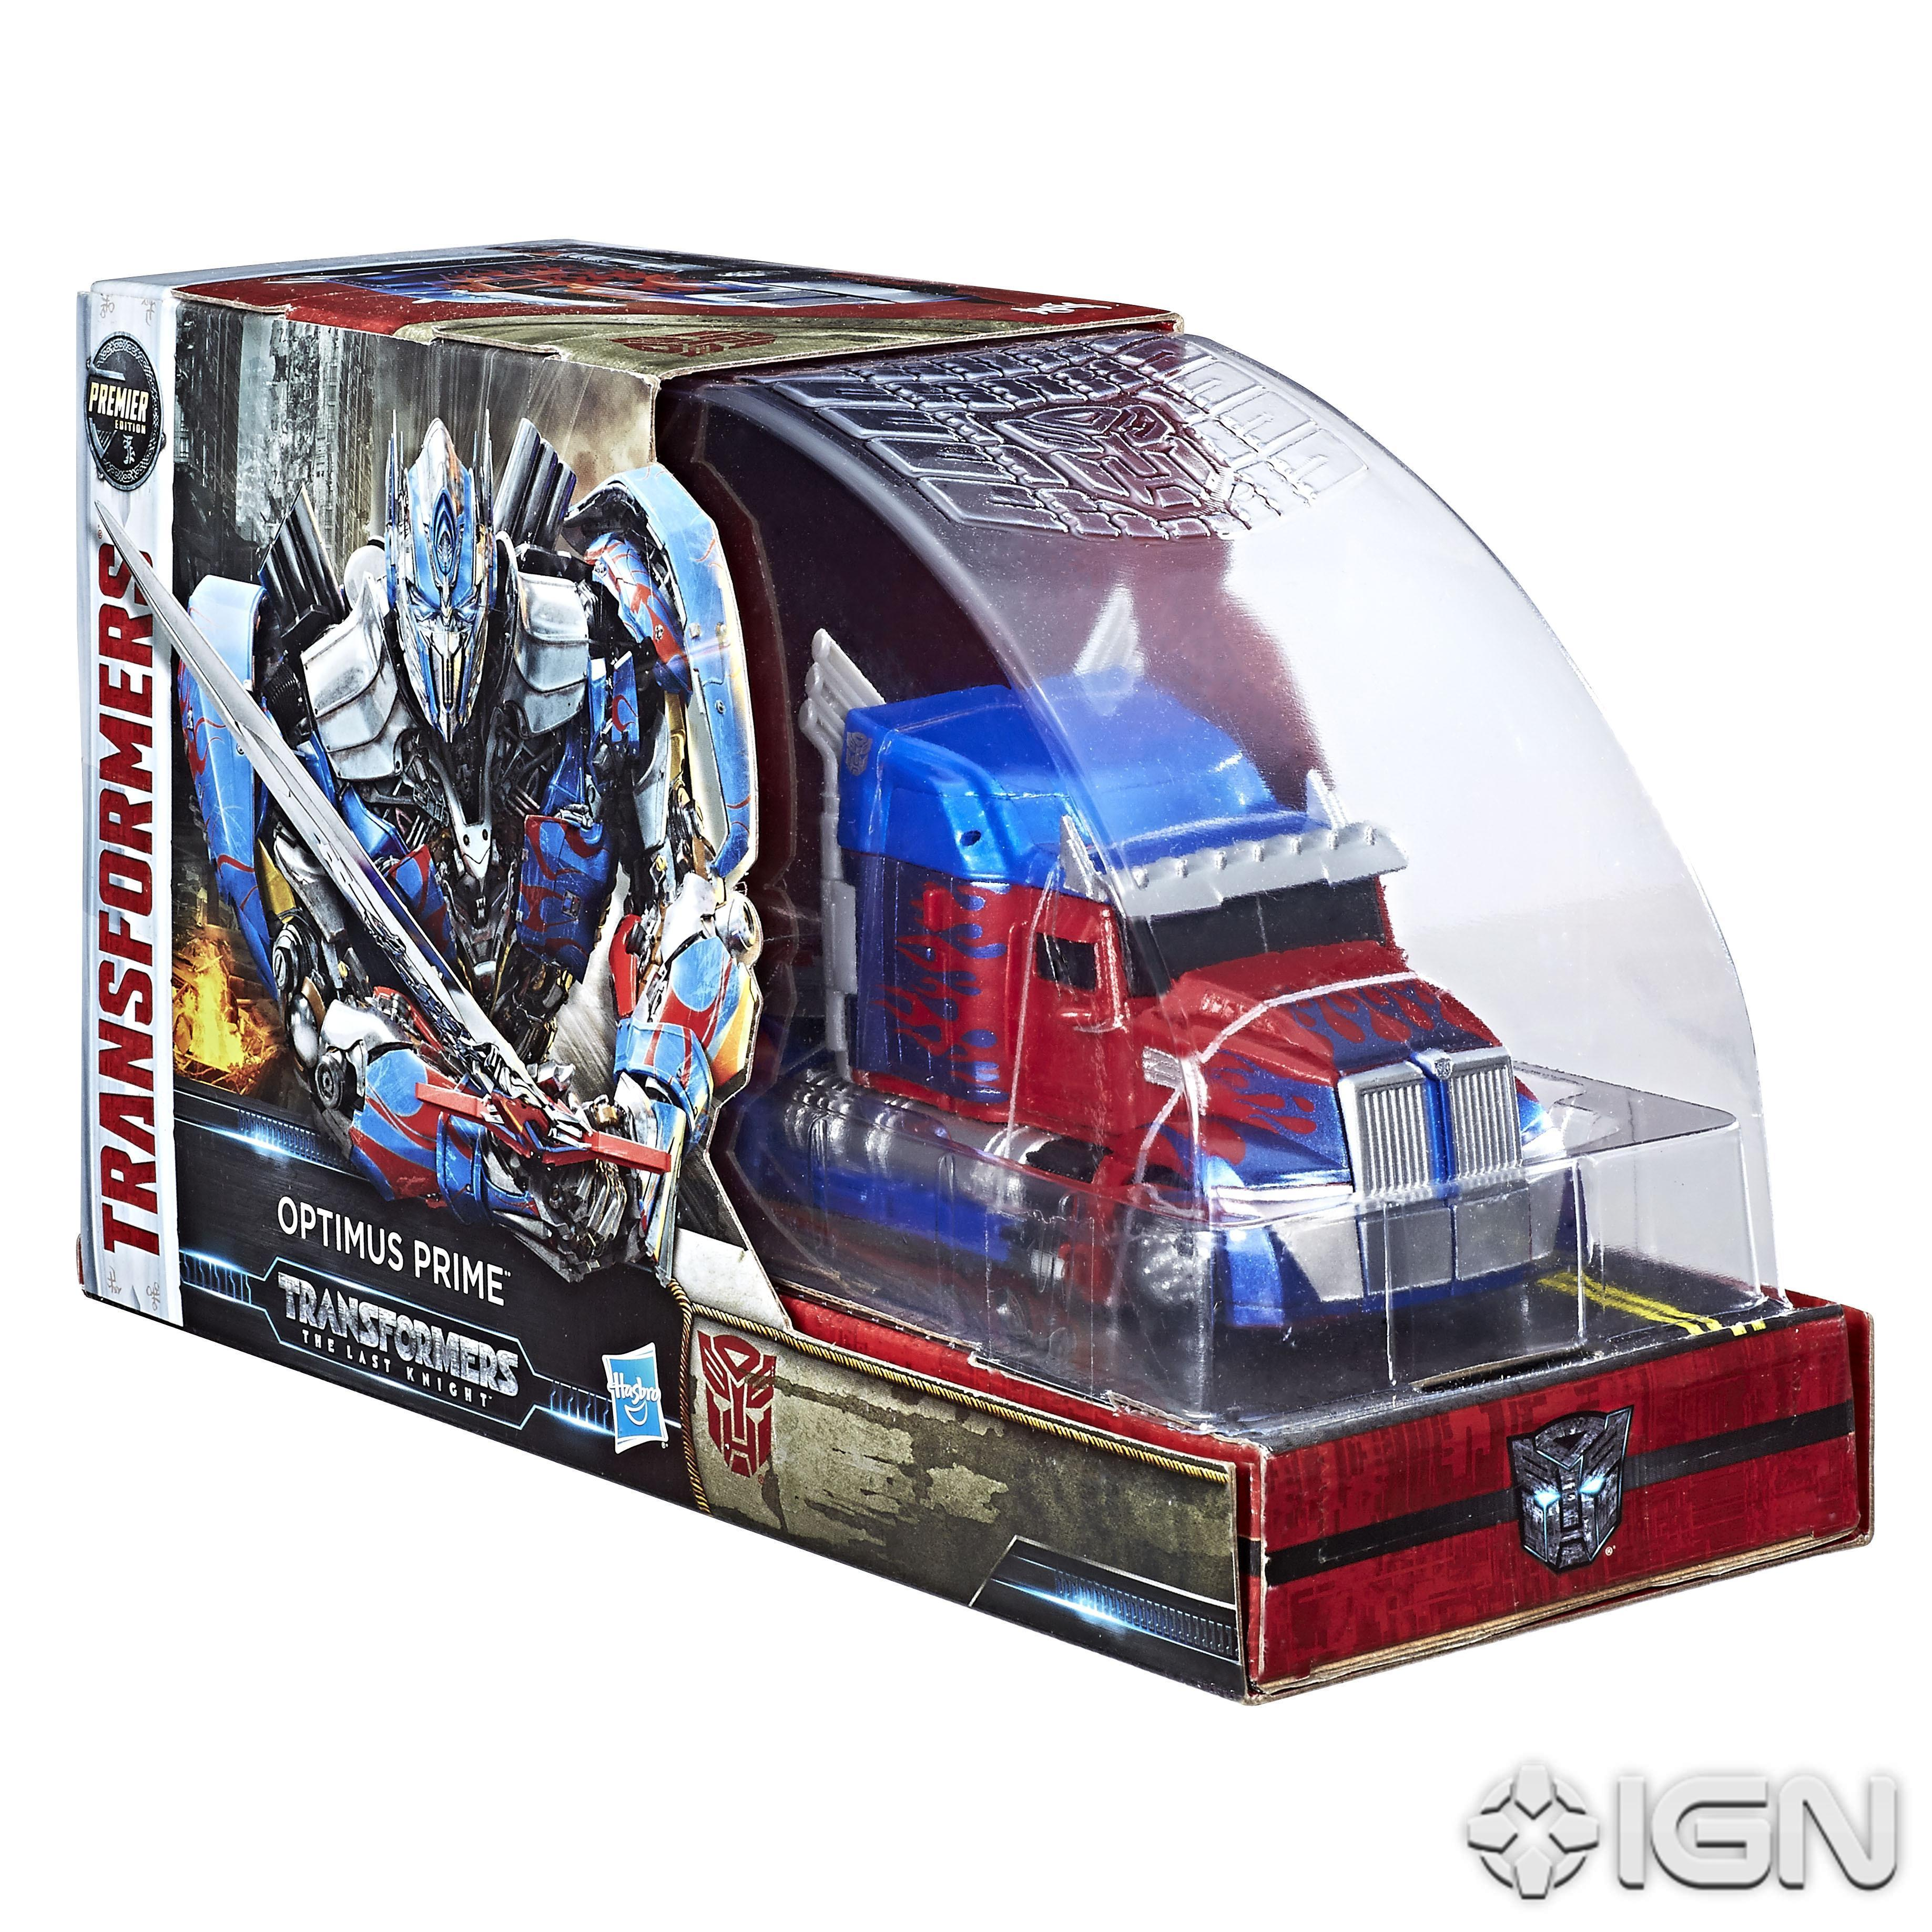 truck toys r us with Optimus Prime Sdcc 2017 50997 on Meccano 10 Models Set Truck additionally Gone Extinct Animatronic T Rex Bursts Flames as well PTRUDE1 7242821dt further Paw Patrol Toys Amazon moreover Watch.